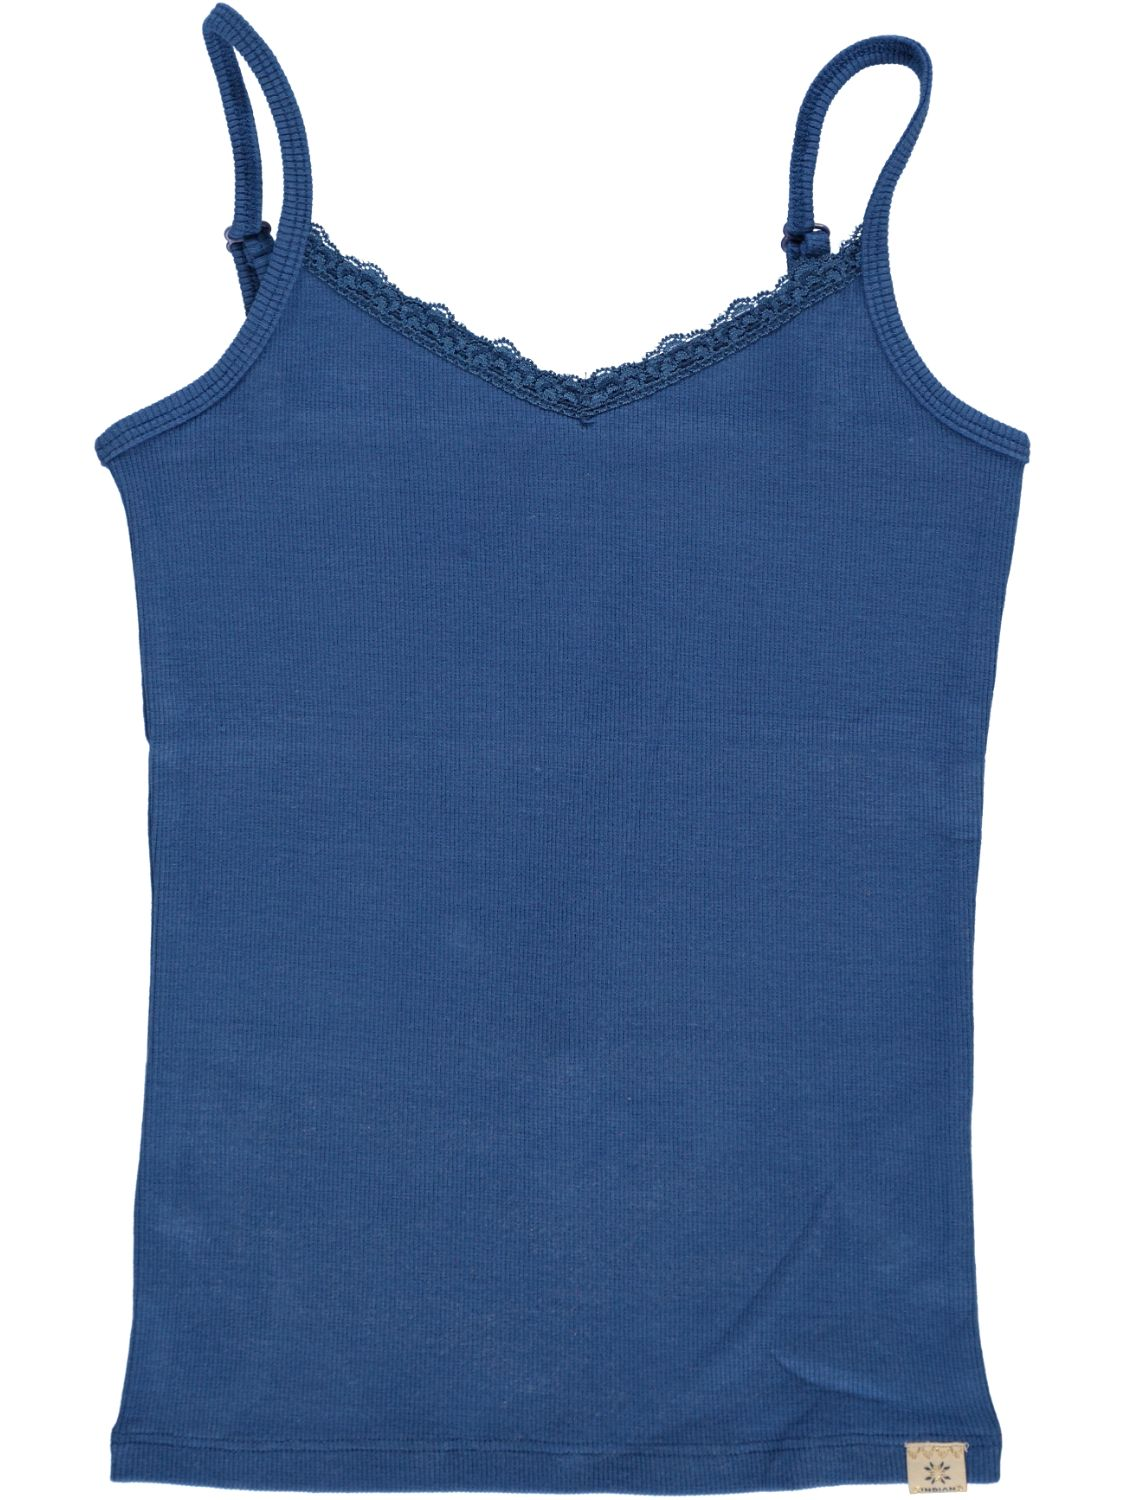 Indian Blue Jeans Top